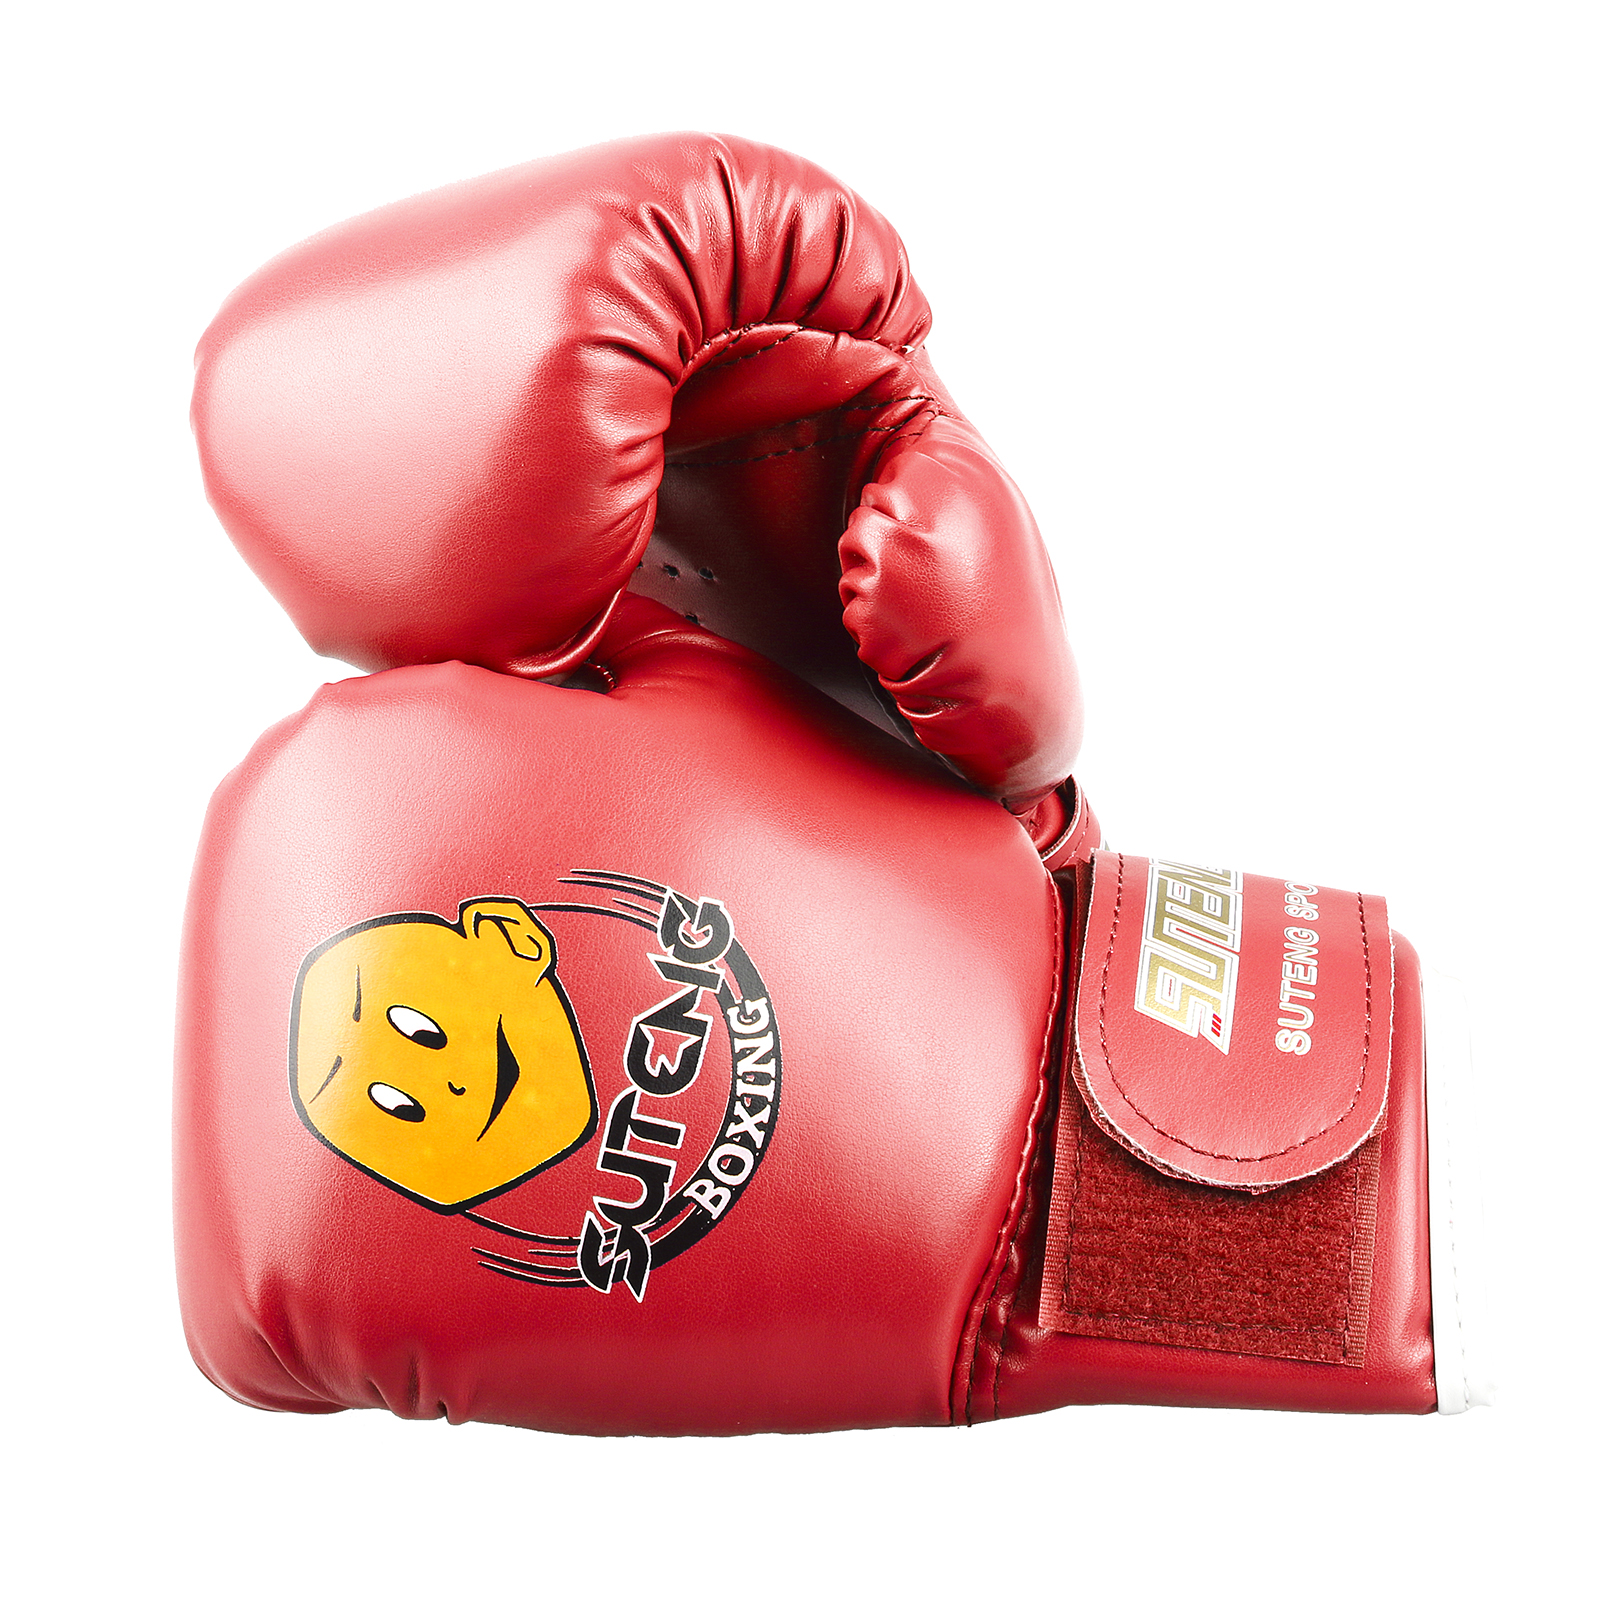 New-Kids-Children-Cartoon-PU-Sparring-Grappling-Training-Boxing-Gloves-Age-3-12 thumbnail 13